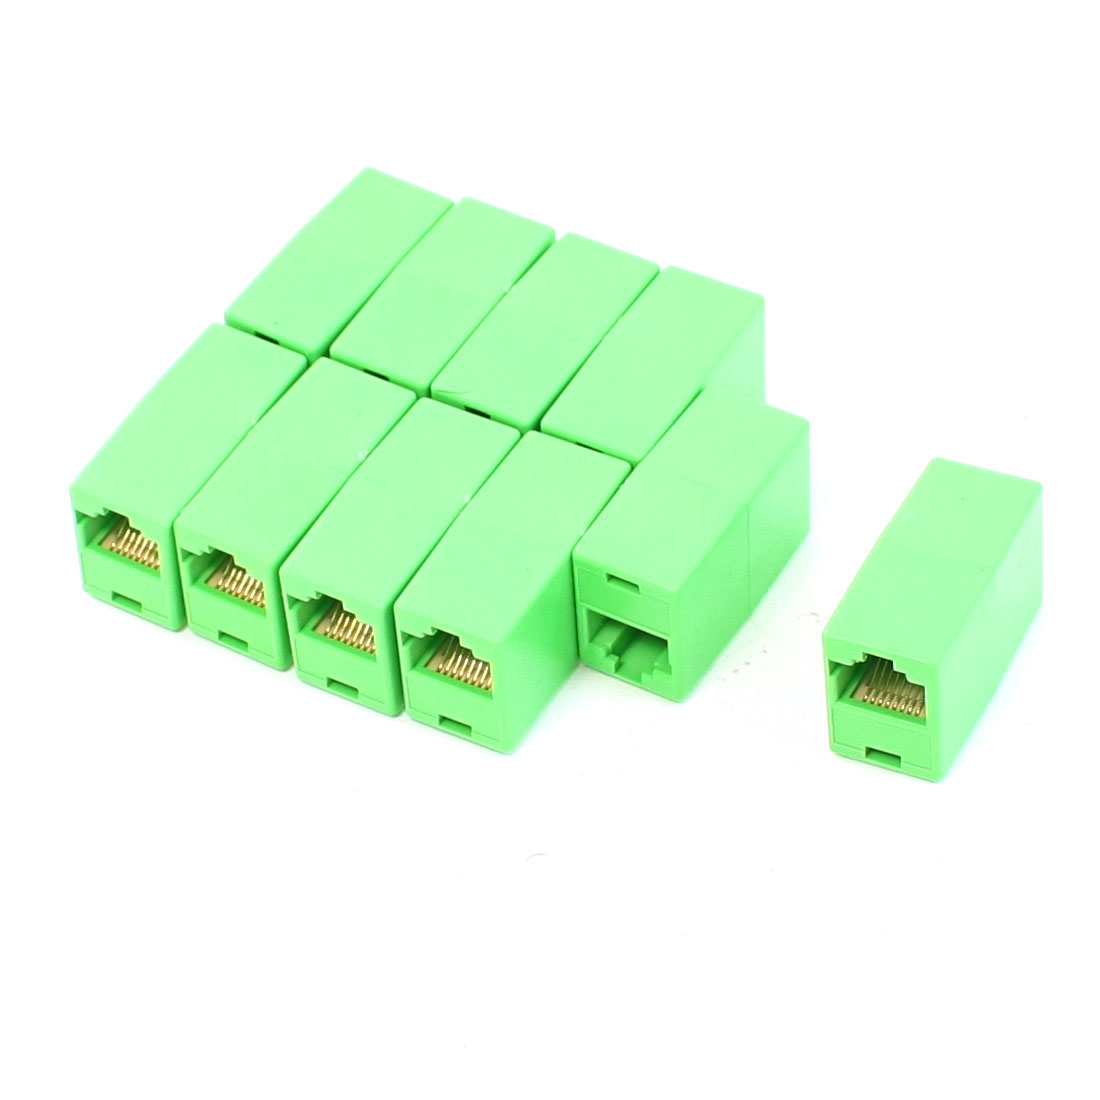 10 Pcs RJ45 8P8C Ethernet Network F/F Inline Coupler Connector Adapter Green